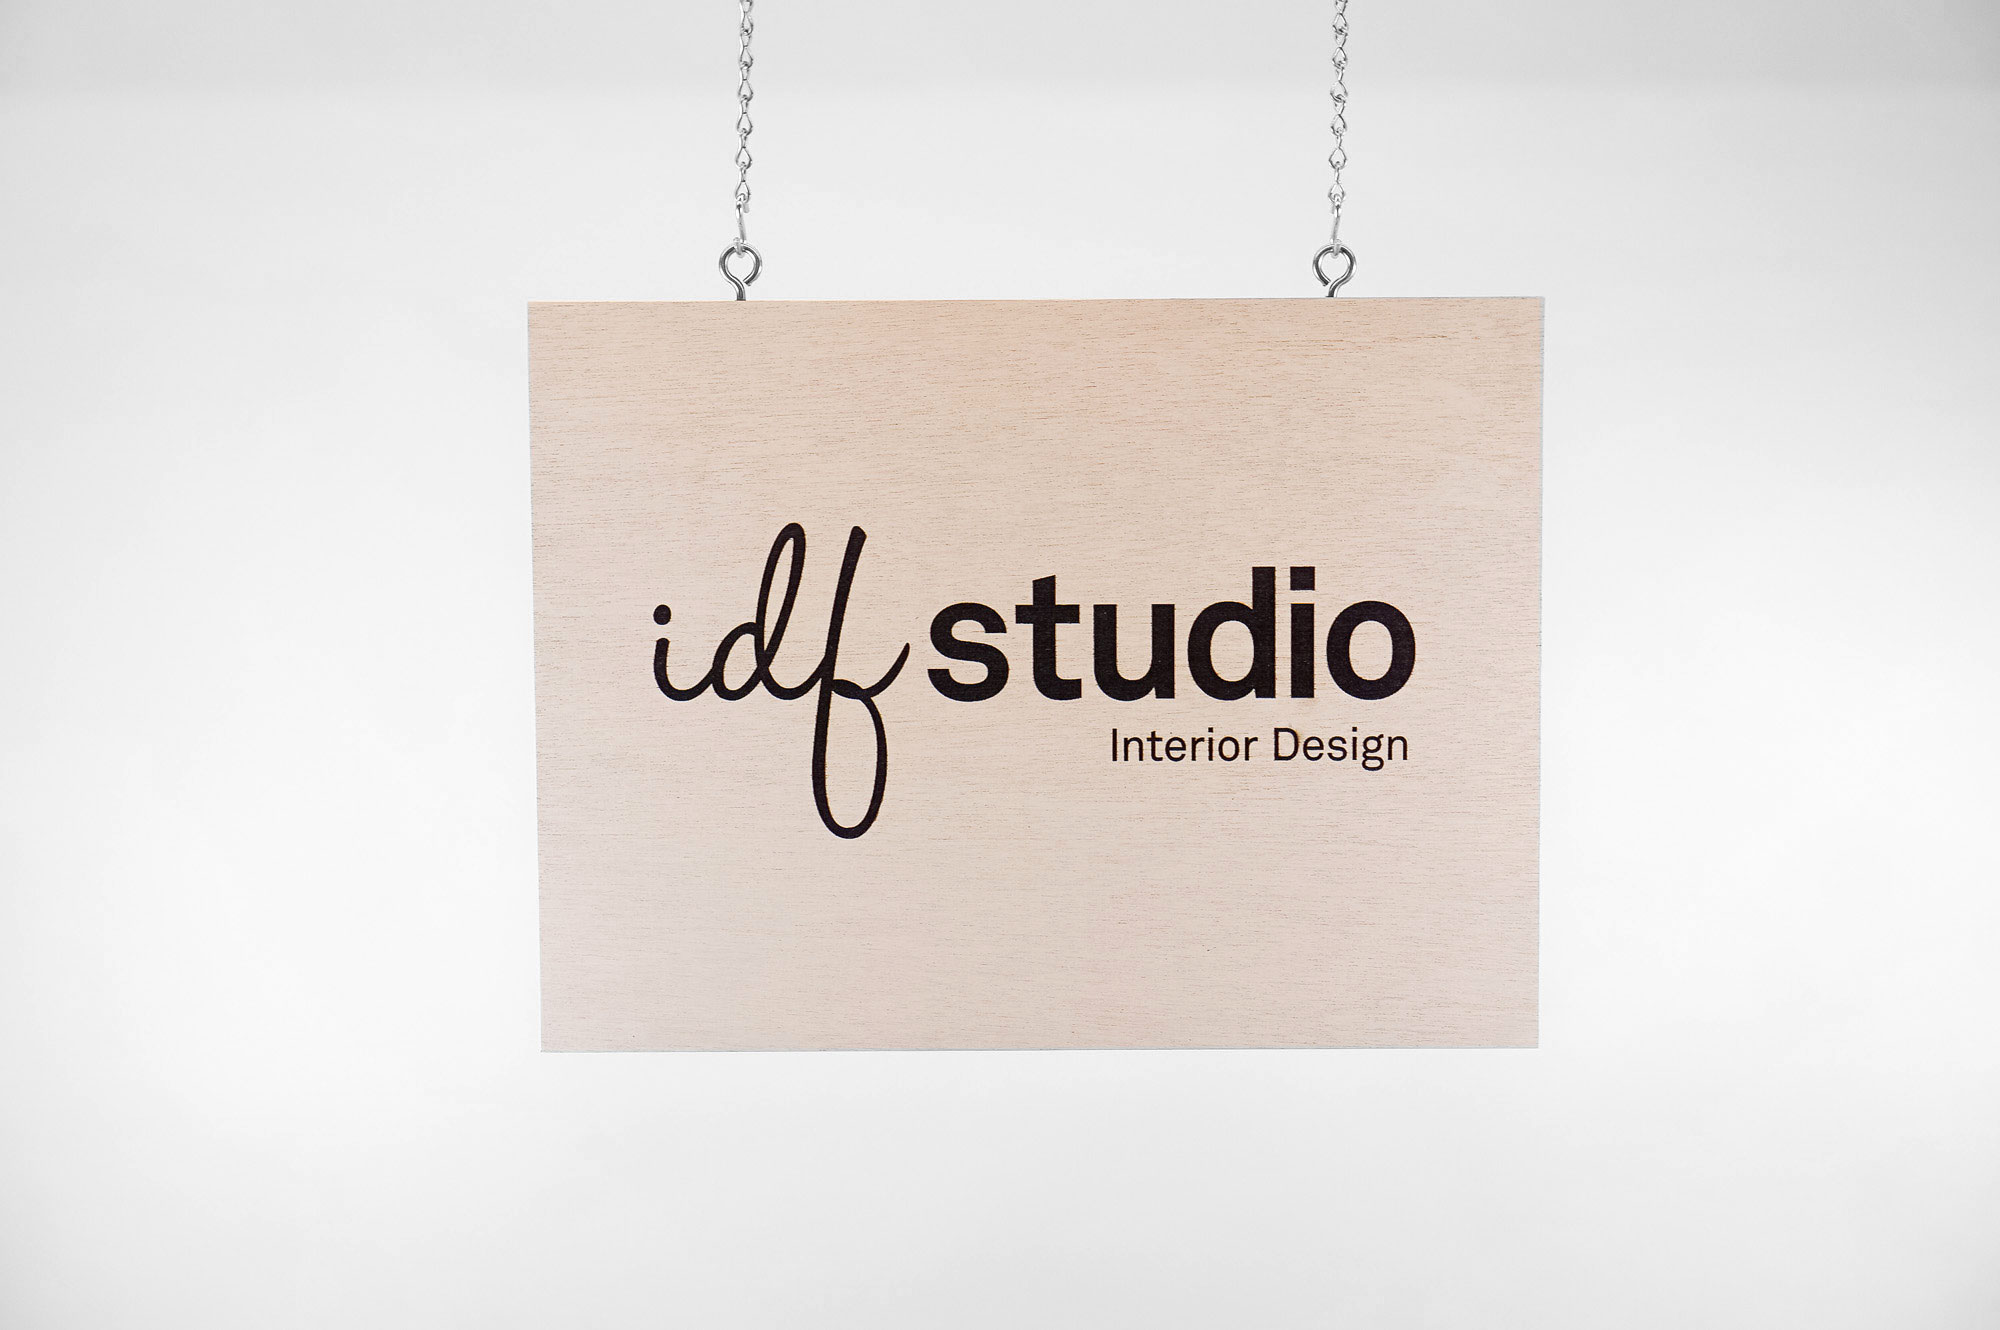 Etched weather resistant wood sign for IDF Studio, an interior design agency based in San Francisco.